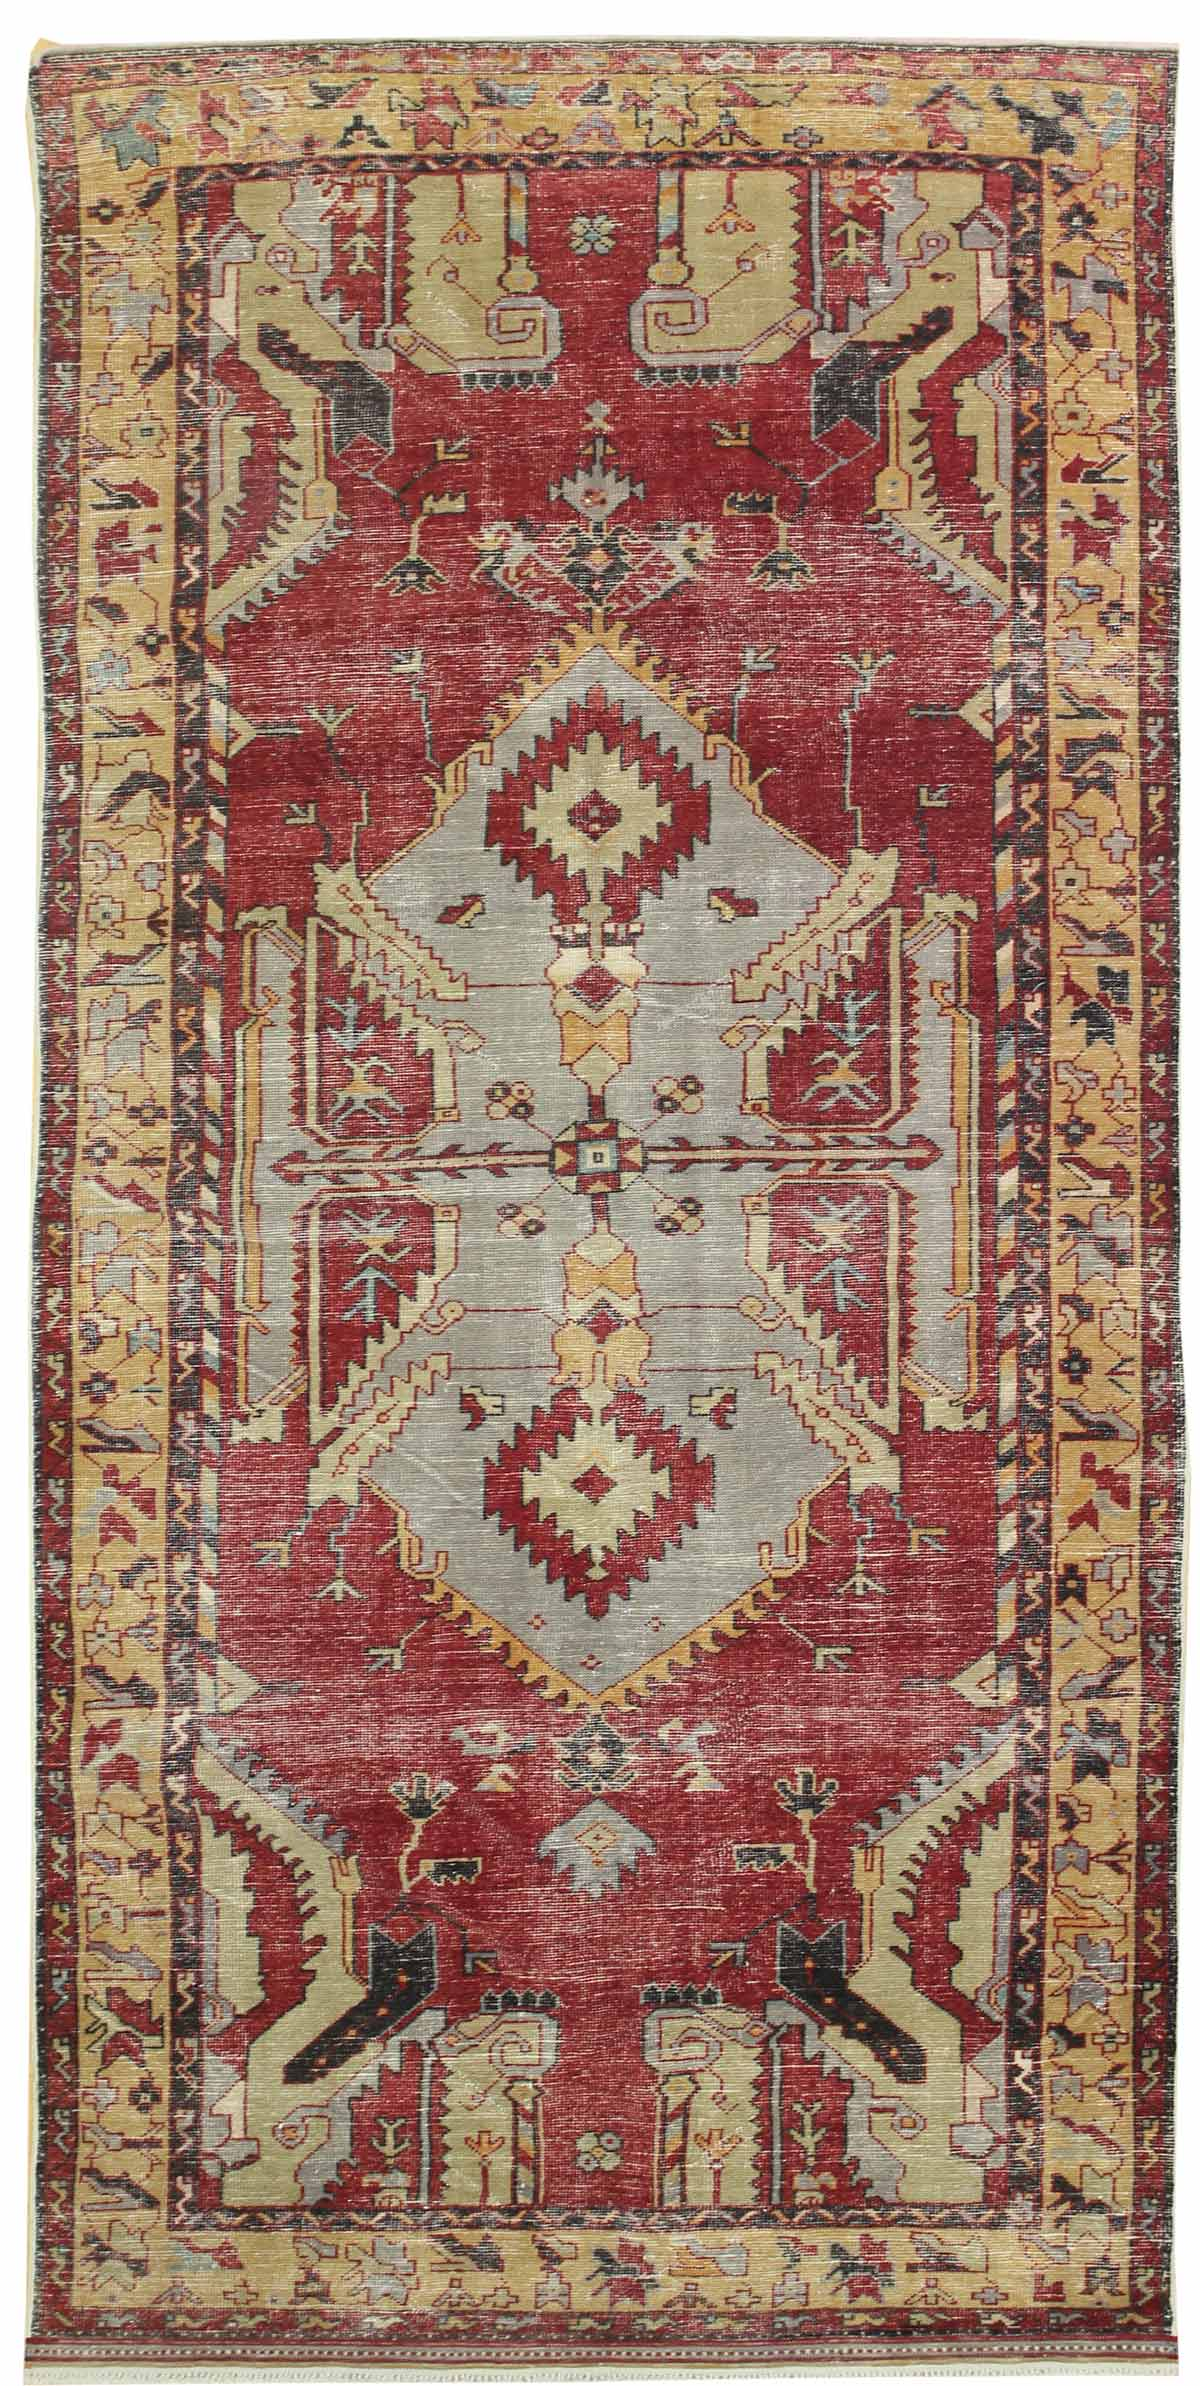 Vintage Dragon Handwoven Tribal Rug